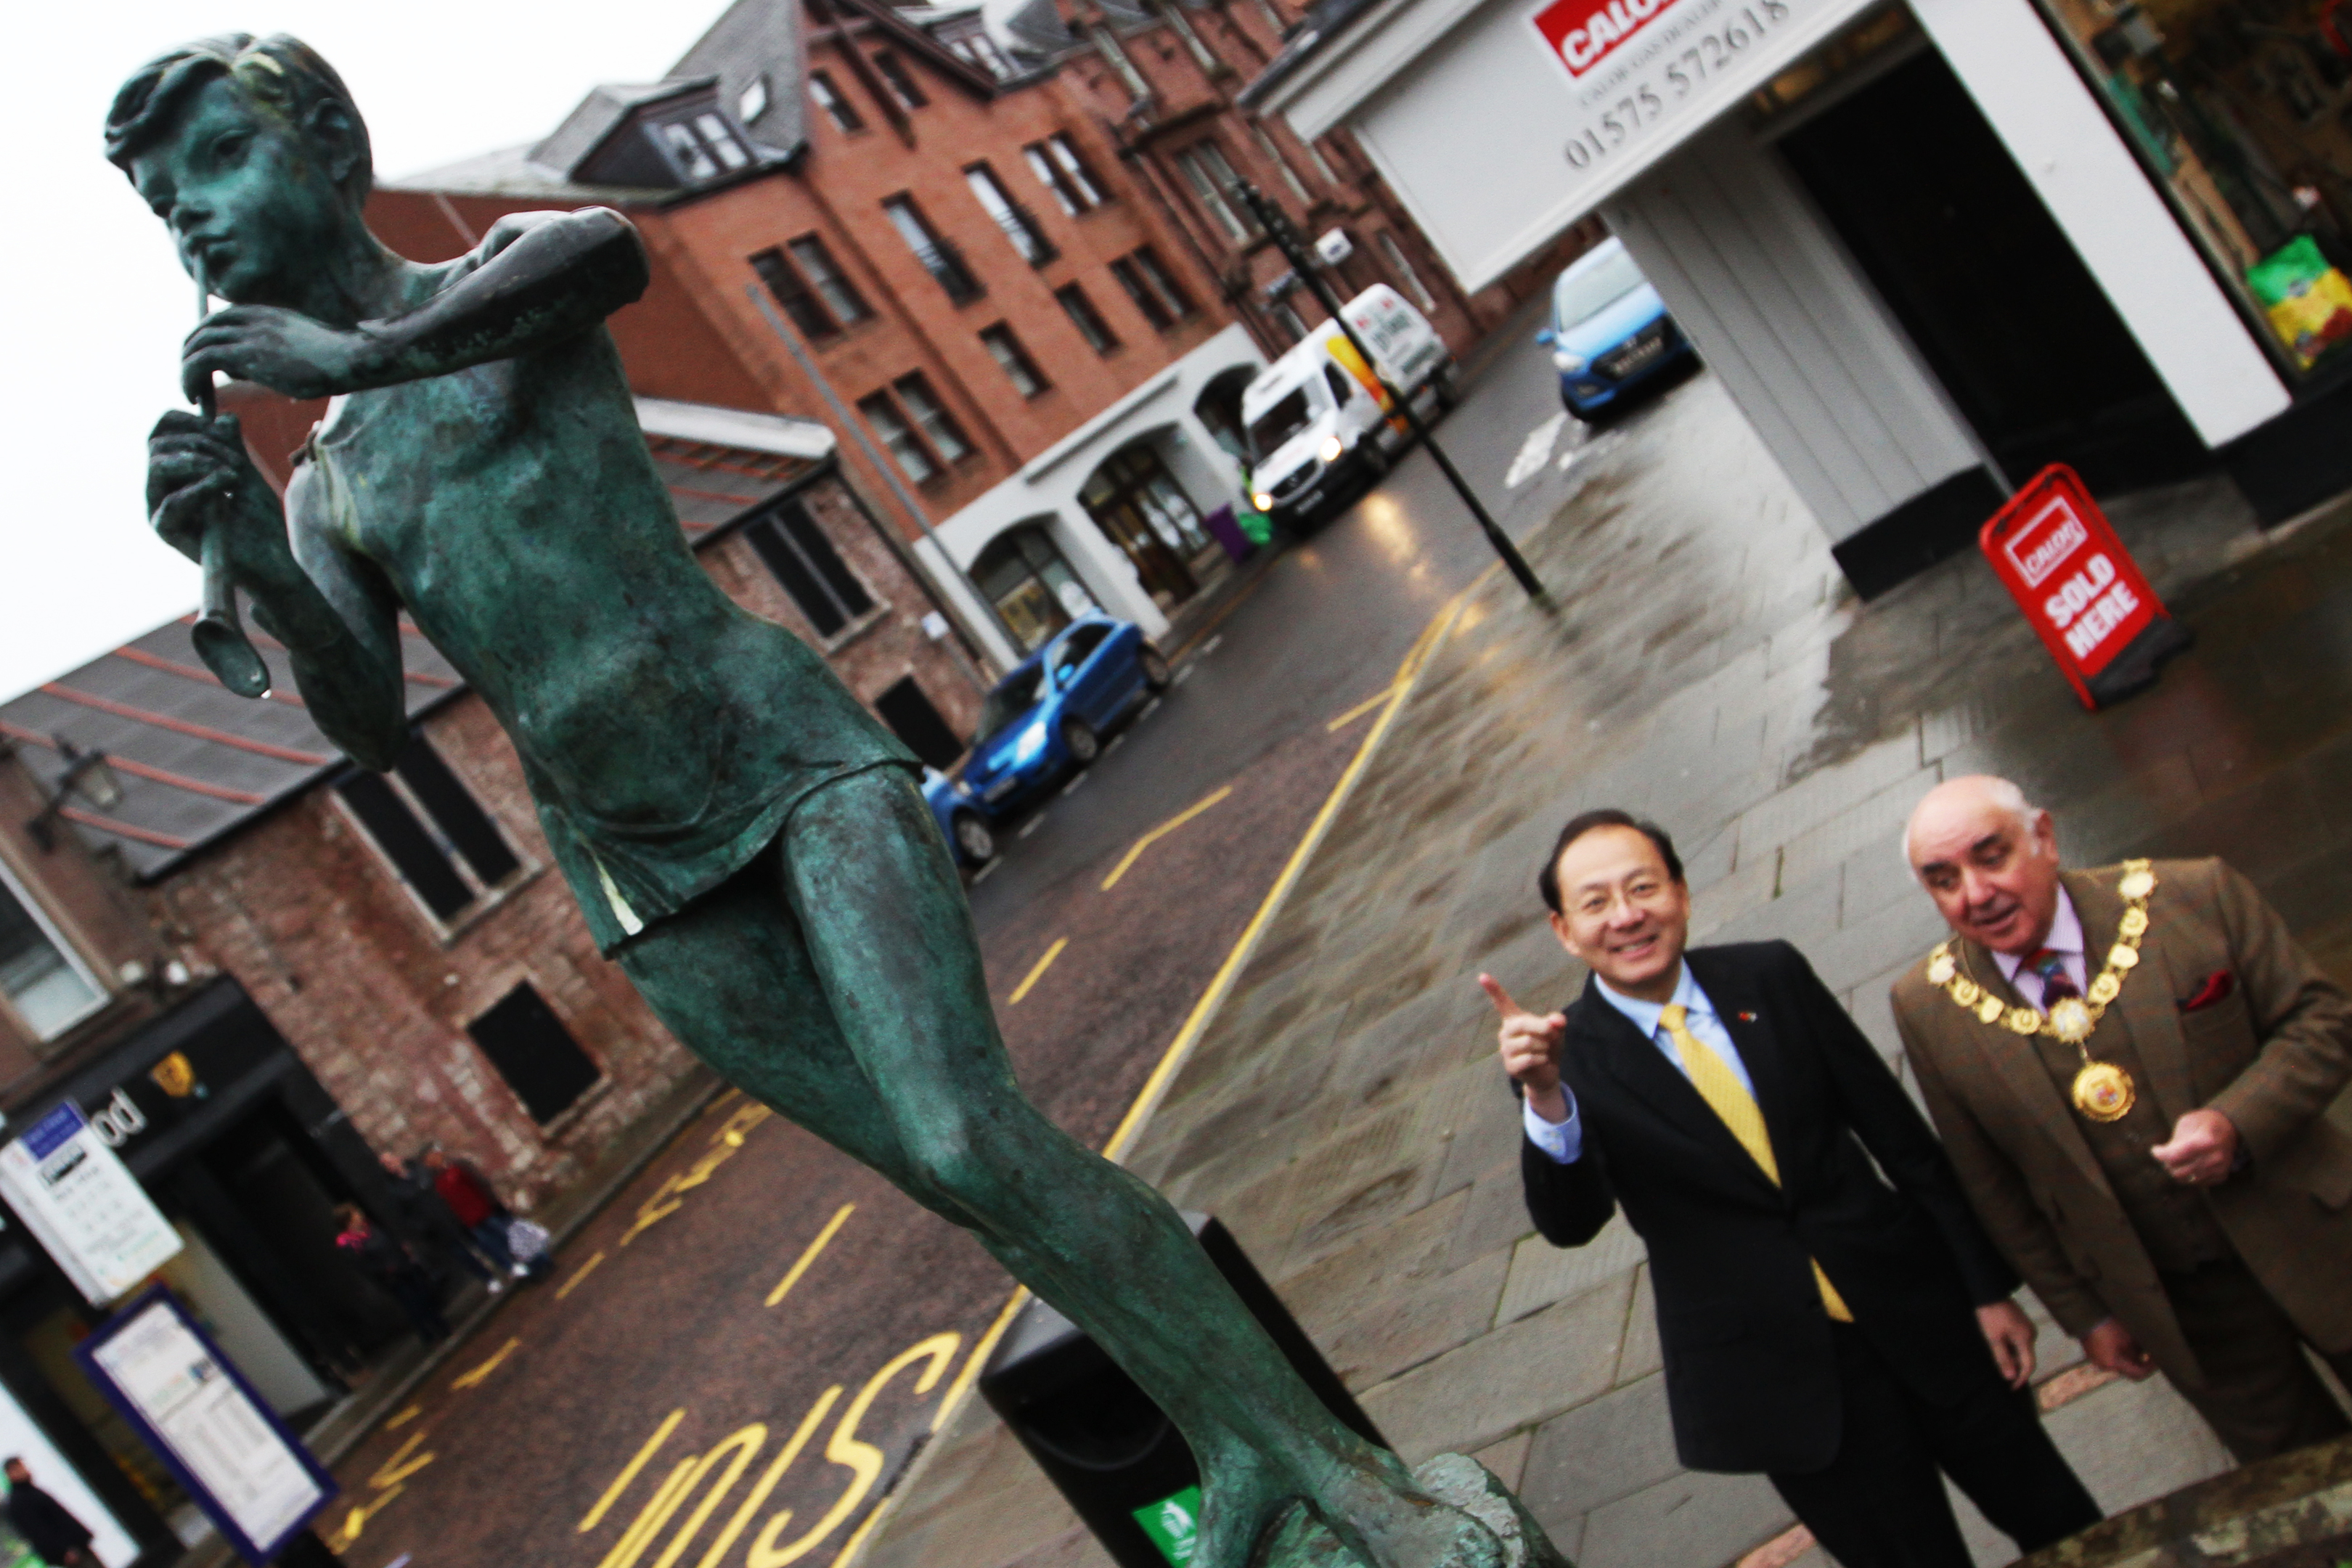 Chinese Consul General Pan Xinchun viewing the Peter Pan sculpture with Provost Ronnie Proctor.